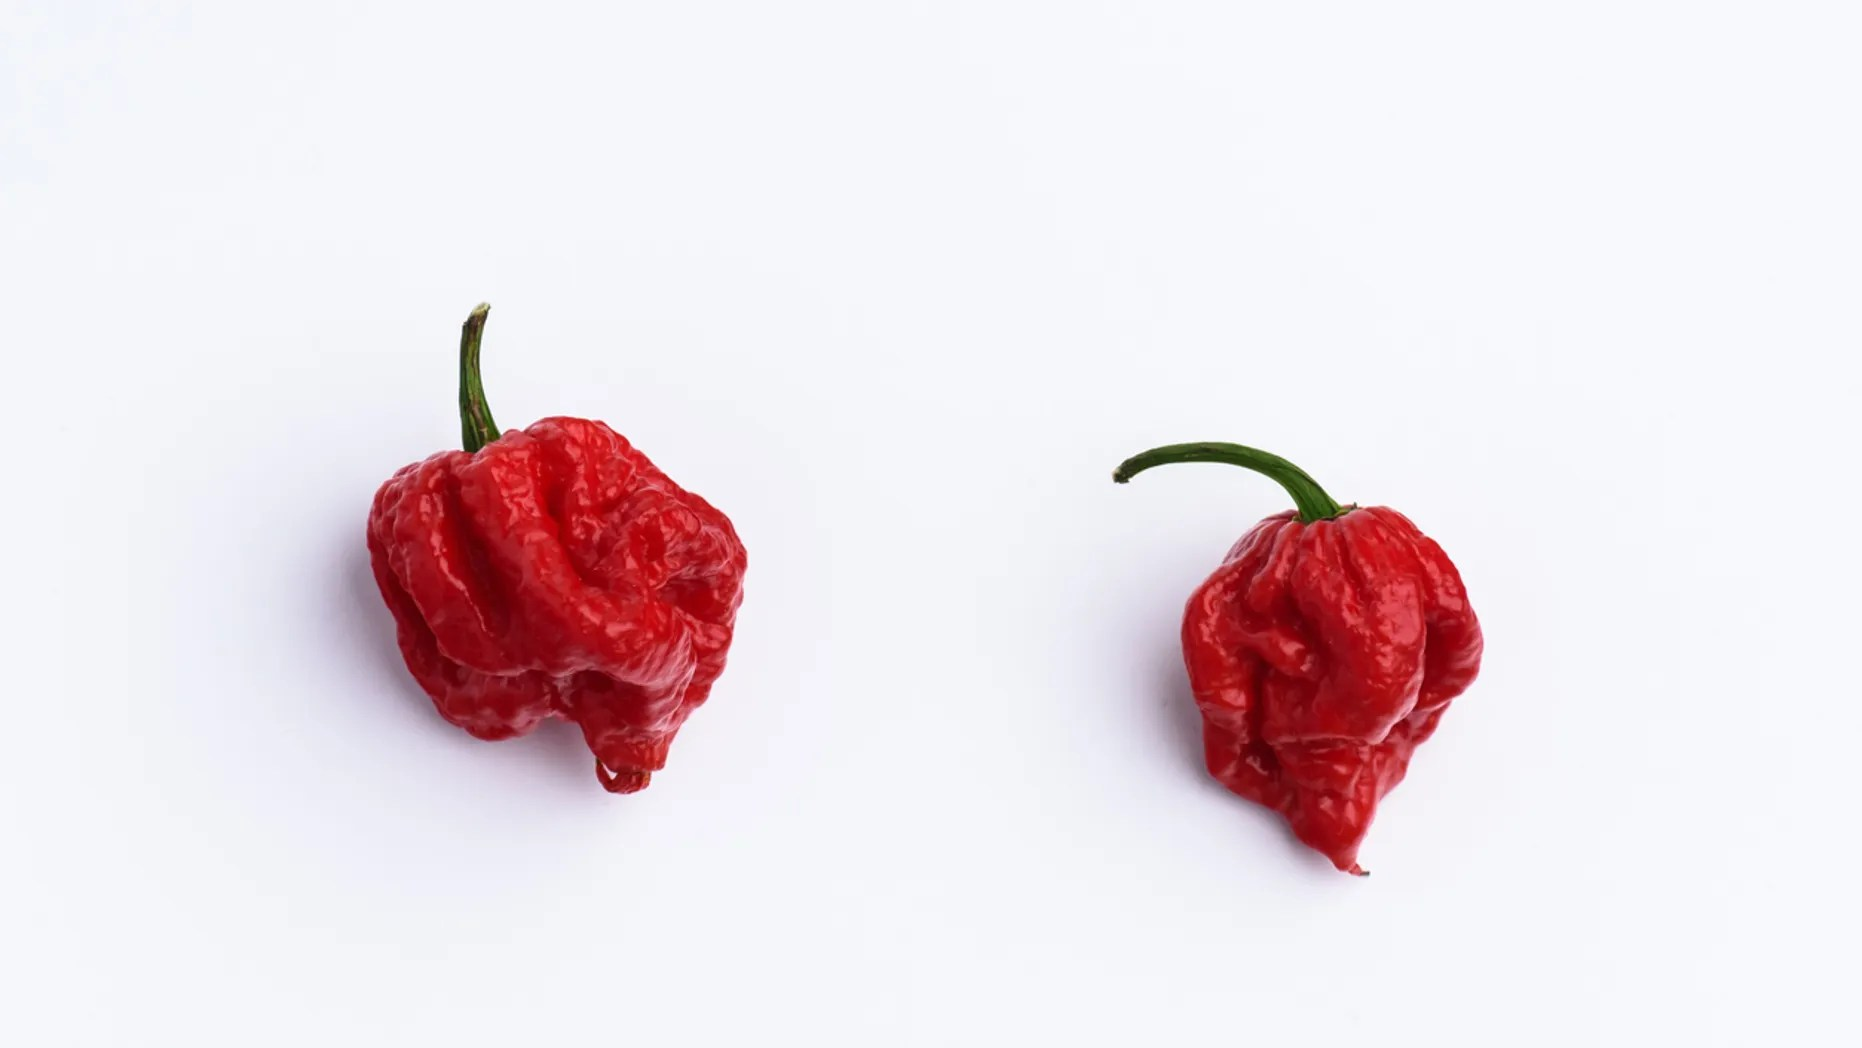 Grande Chips Are Made Carolina Reaper Which May Be Hottestin News Anchor Vomits After Eating Hottest On Live Tv Carolina Reaper Madness Chip Youtube Carolina Reaper Madness Chip India nice food Carolina Reaper Madness Chip